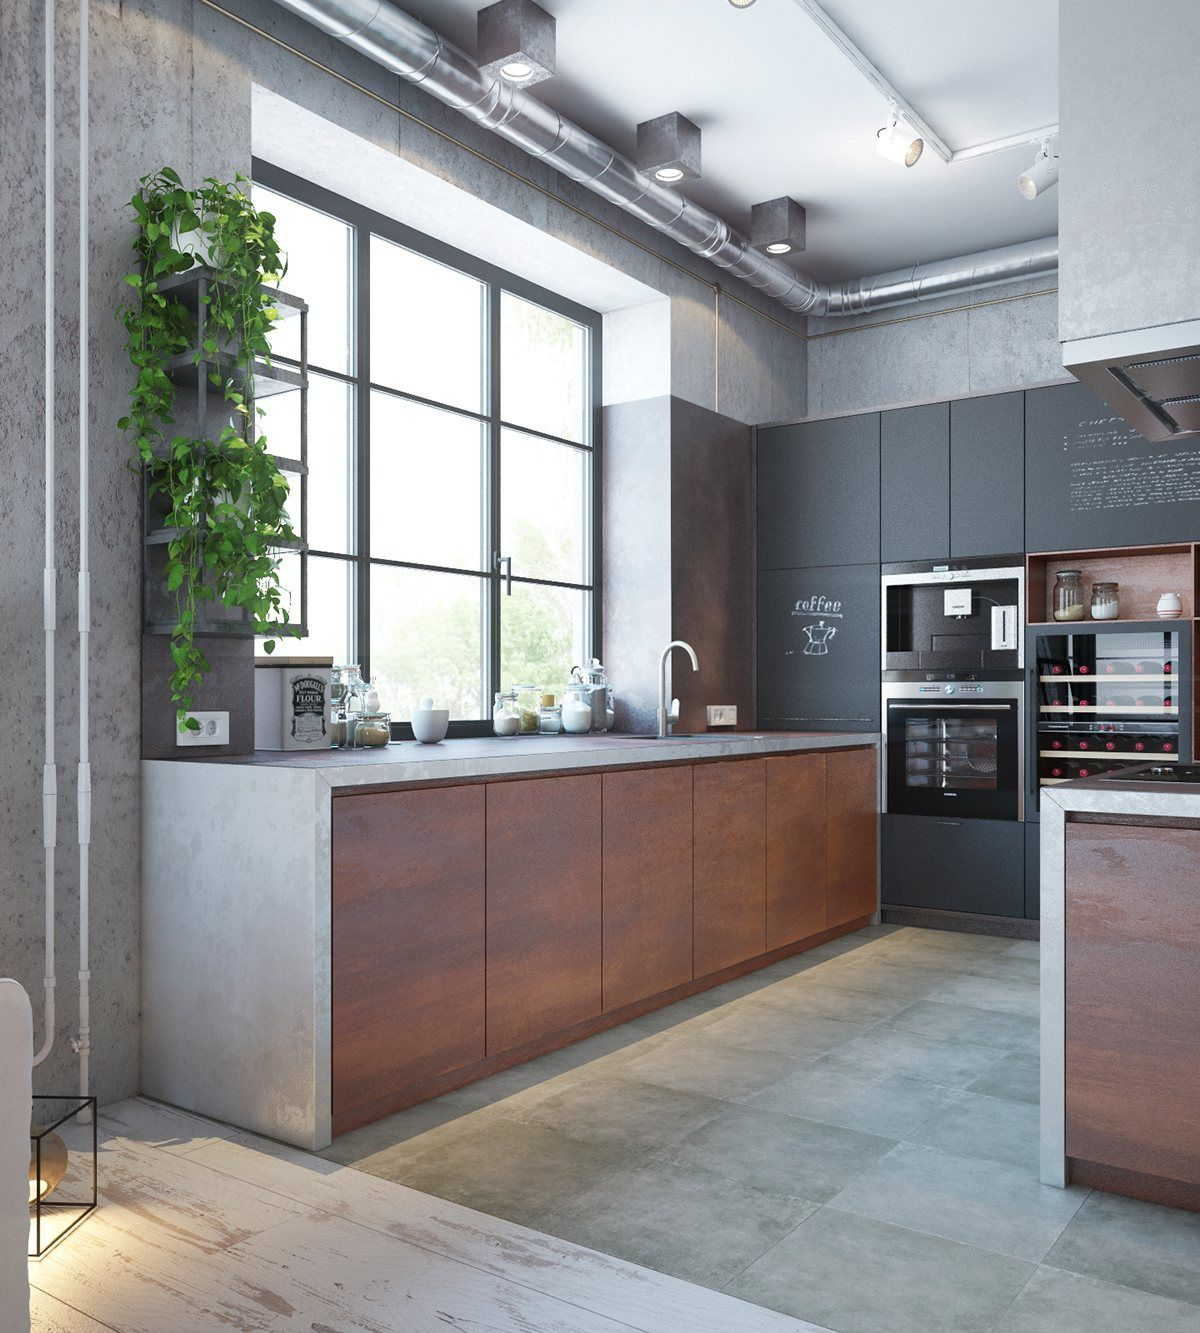 An Industrial Home With Warm Hues Industrial Home Design Modern Apartment Decor Industrial Kitchen Design